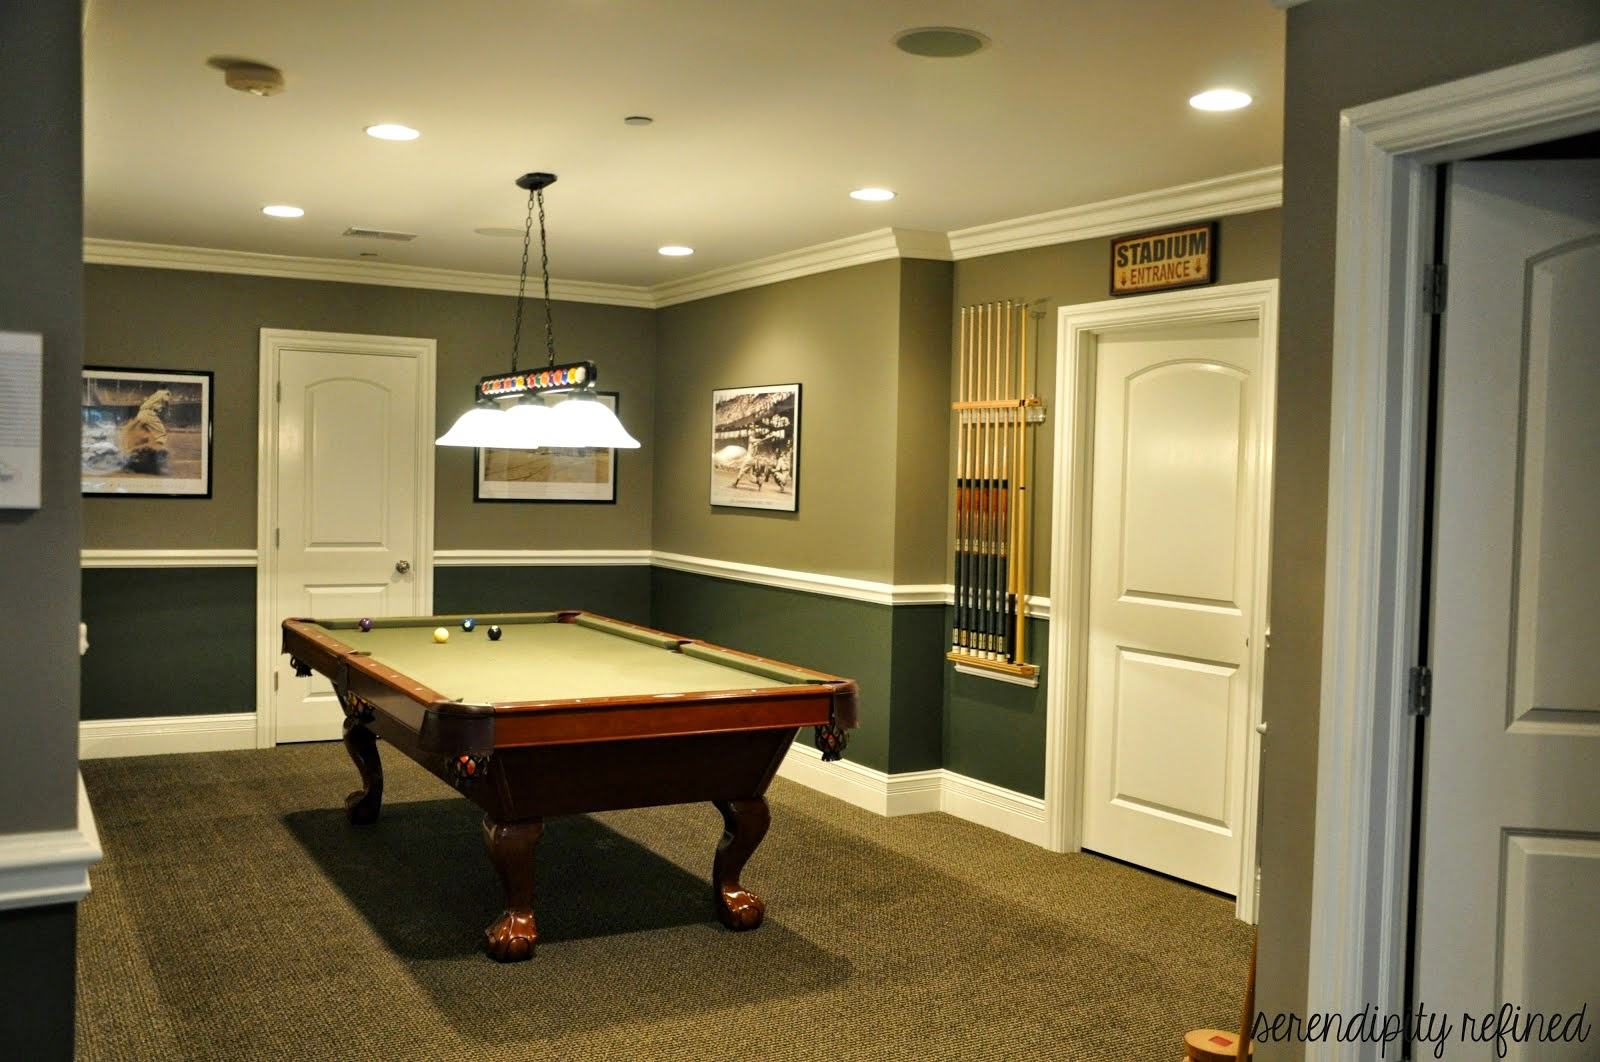 The oculus rift and swimming pools ridley software Basement game room ideas